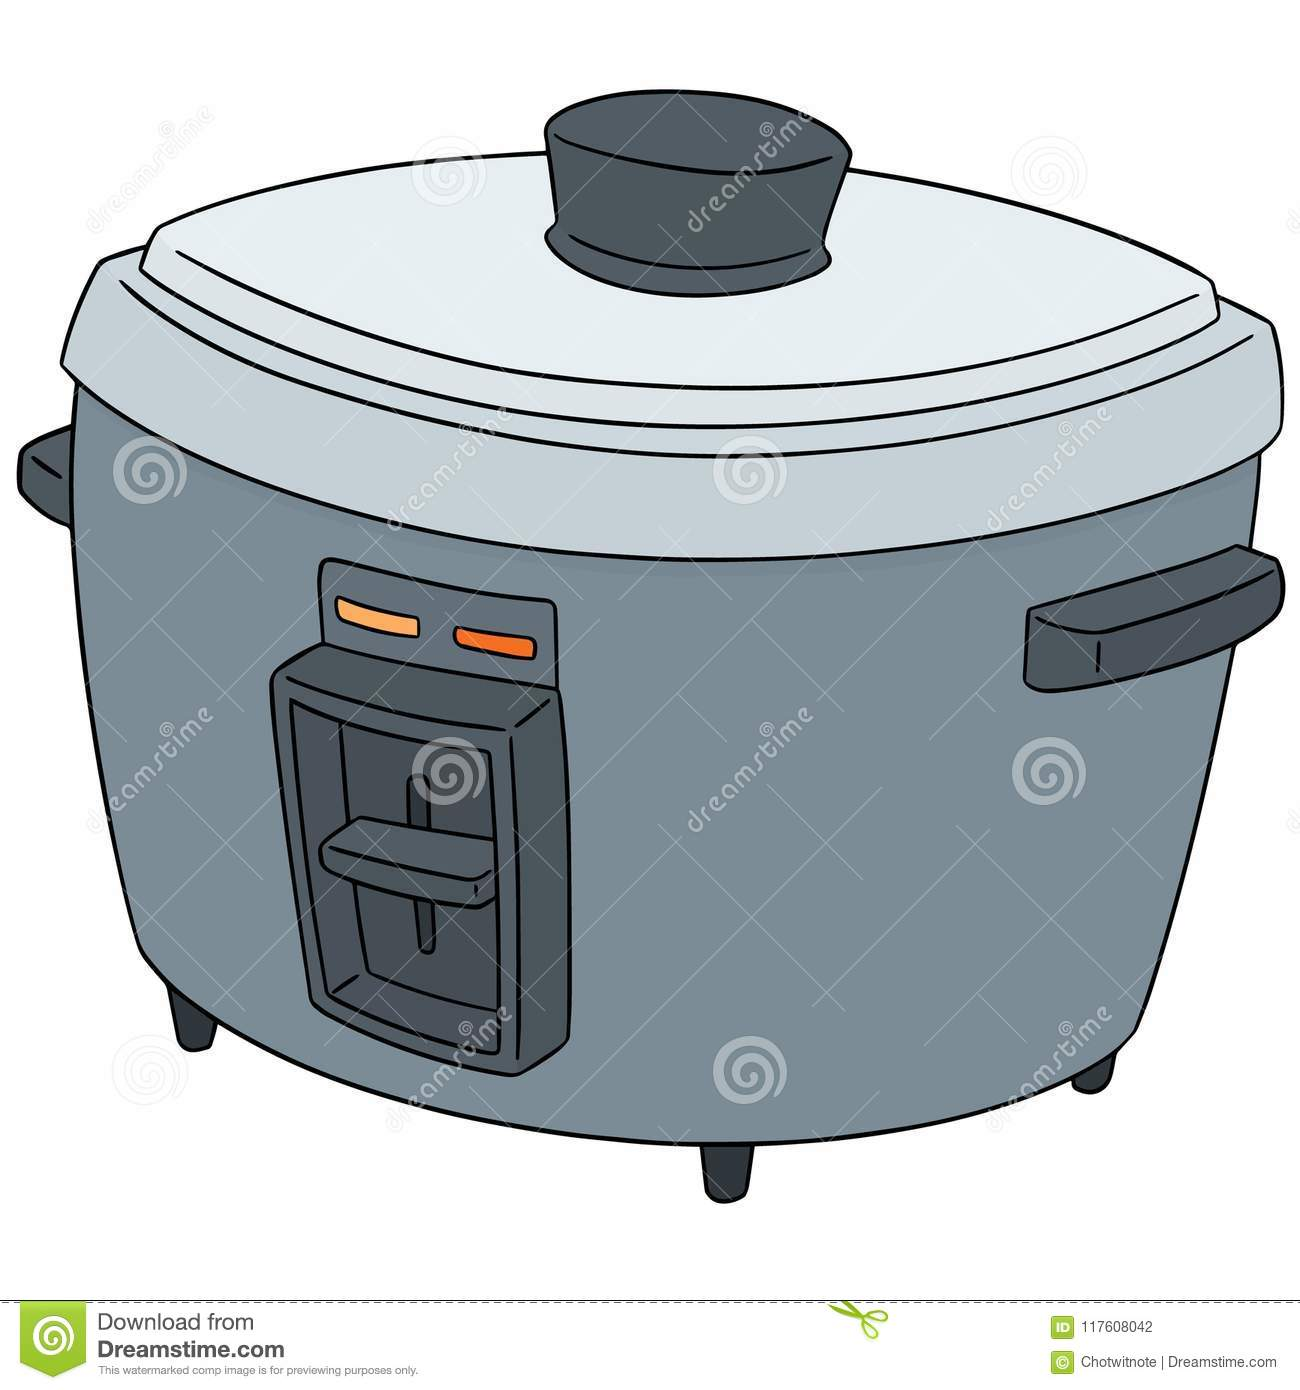 Cartoon Electric Cooker ~ Cooker cartoons illustrations vector stock images